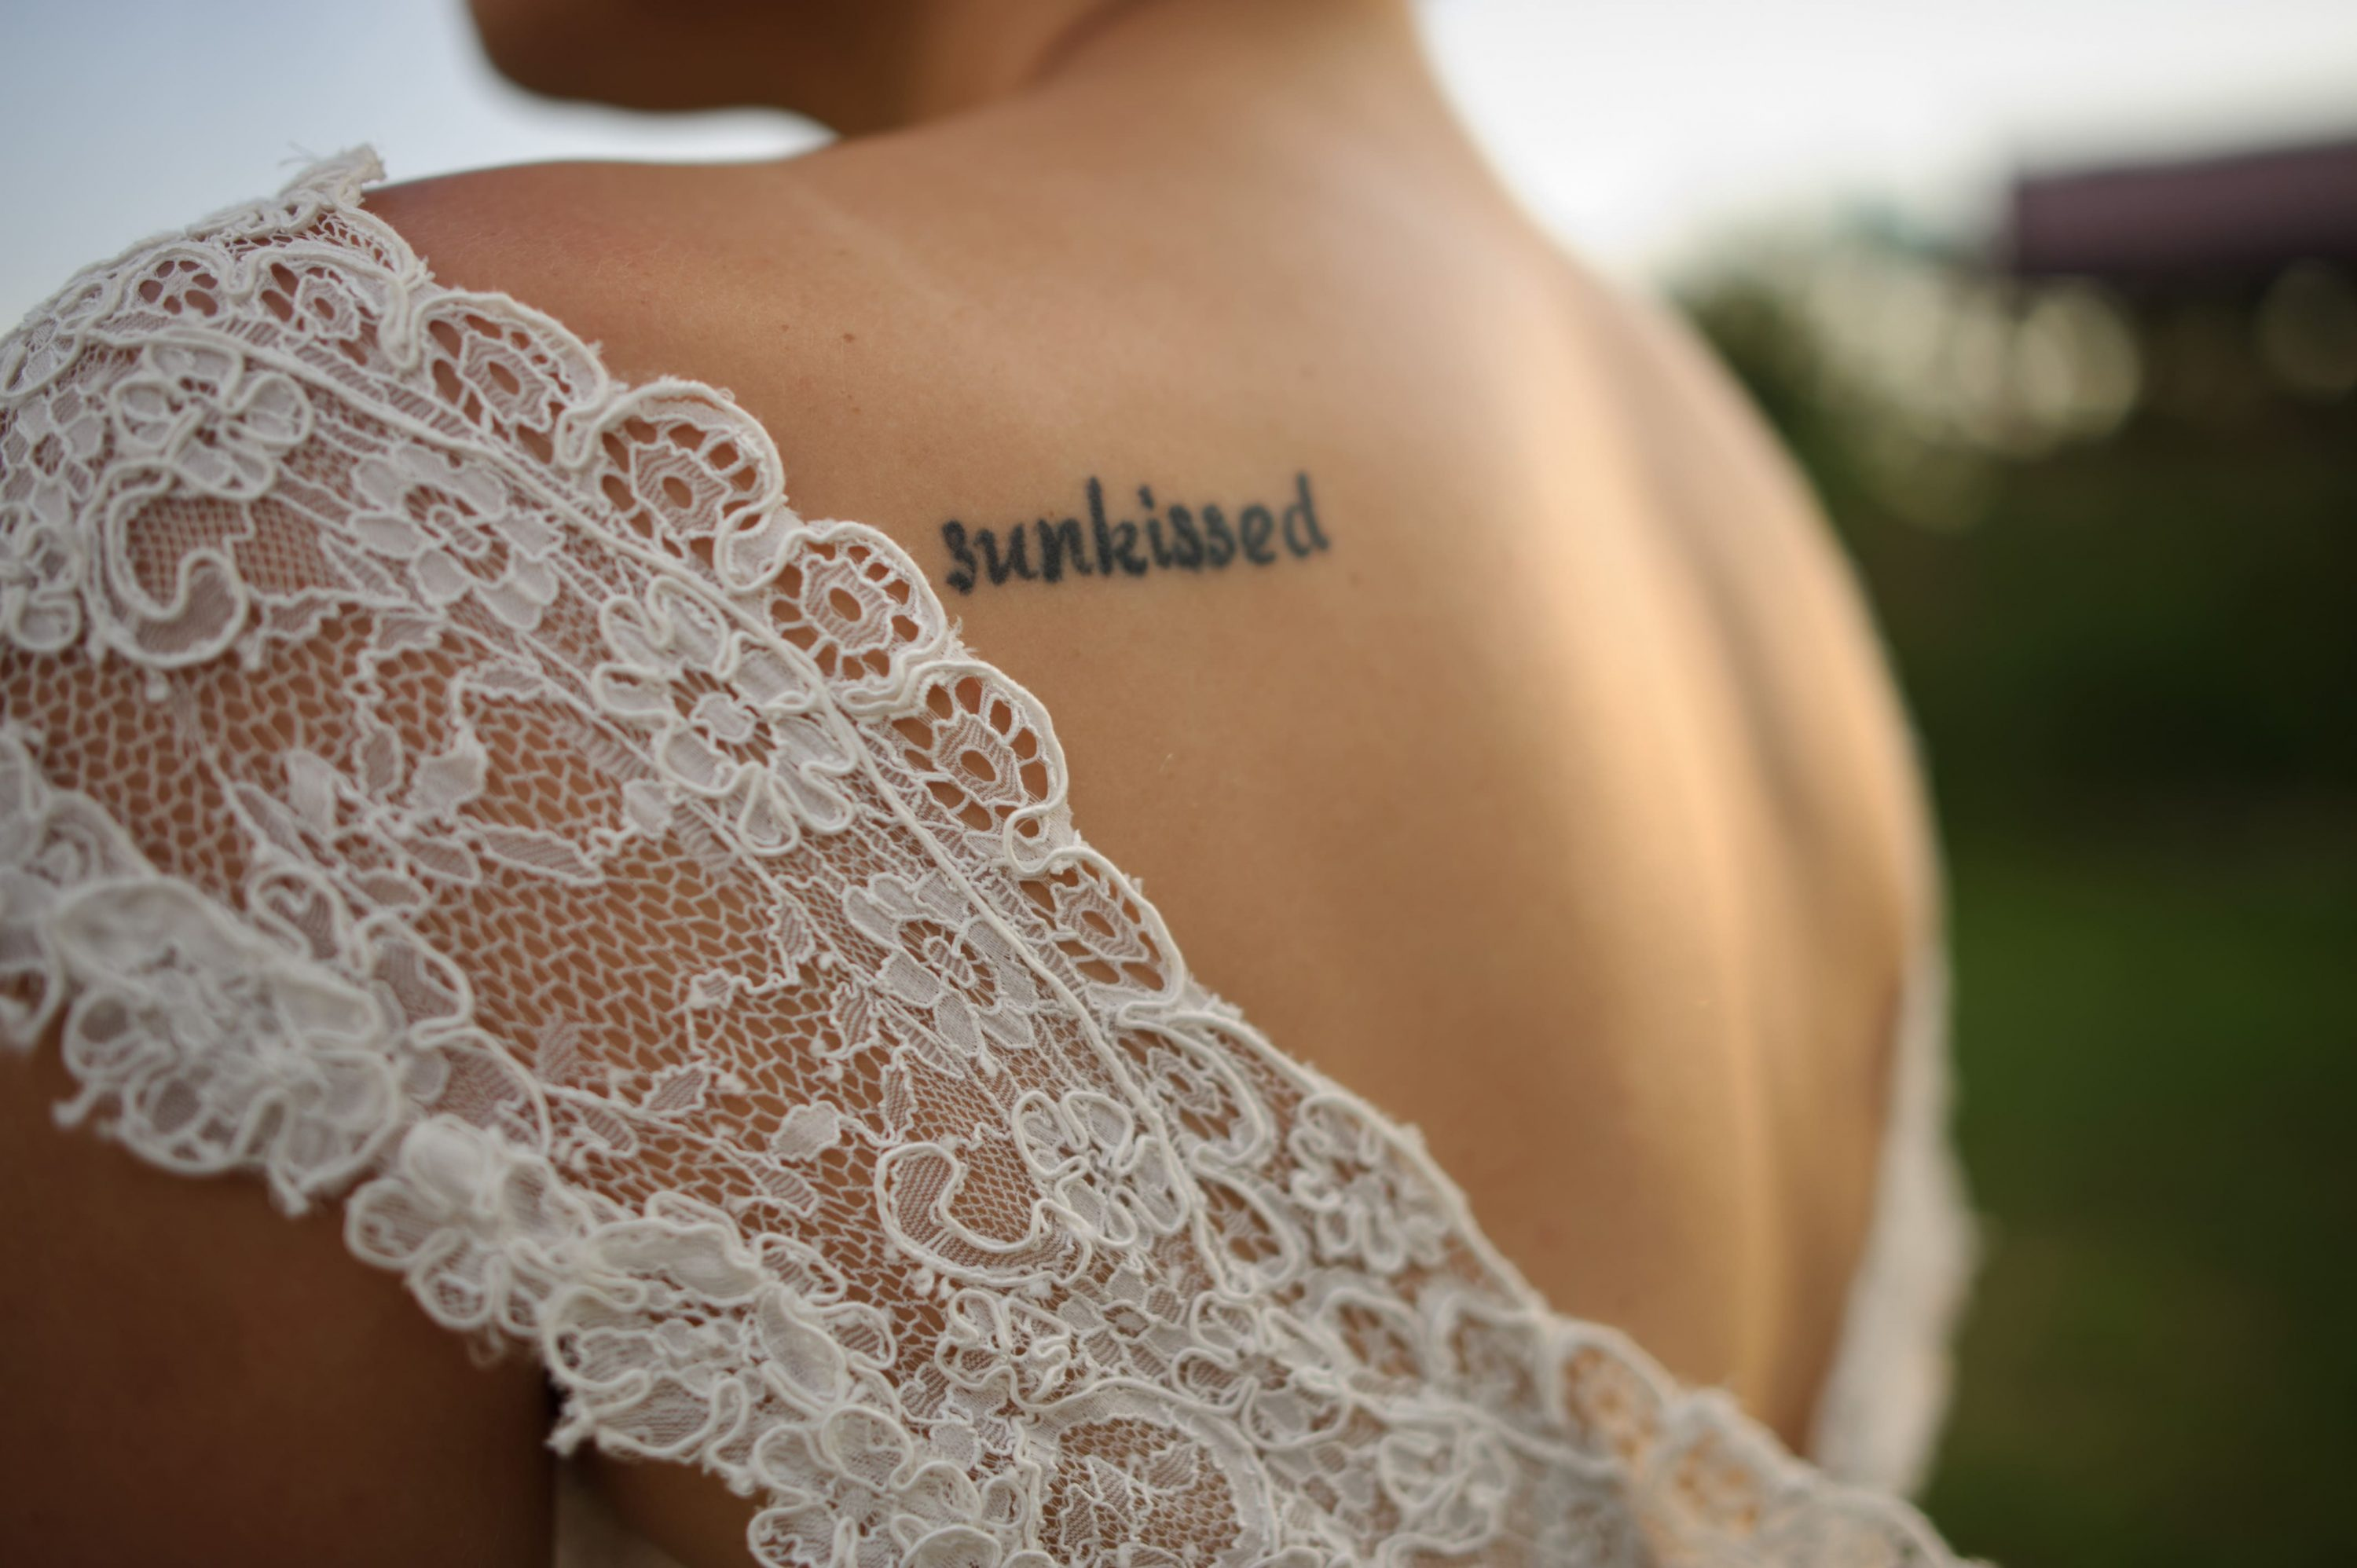 Tattooed Bride Photo: Wedding Photography preview.